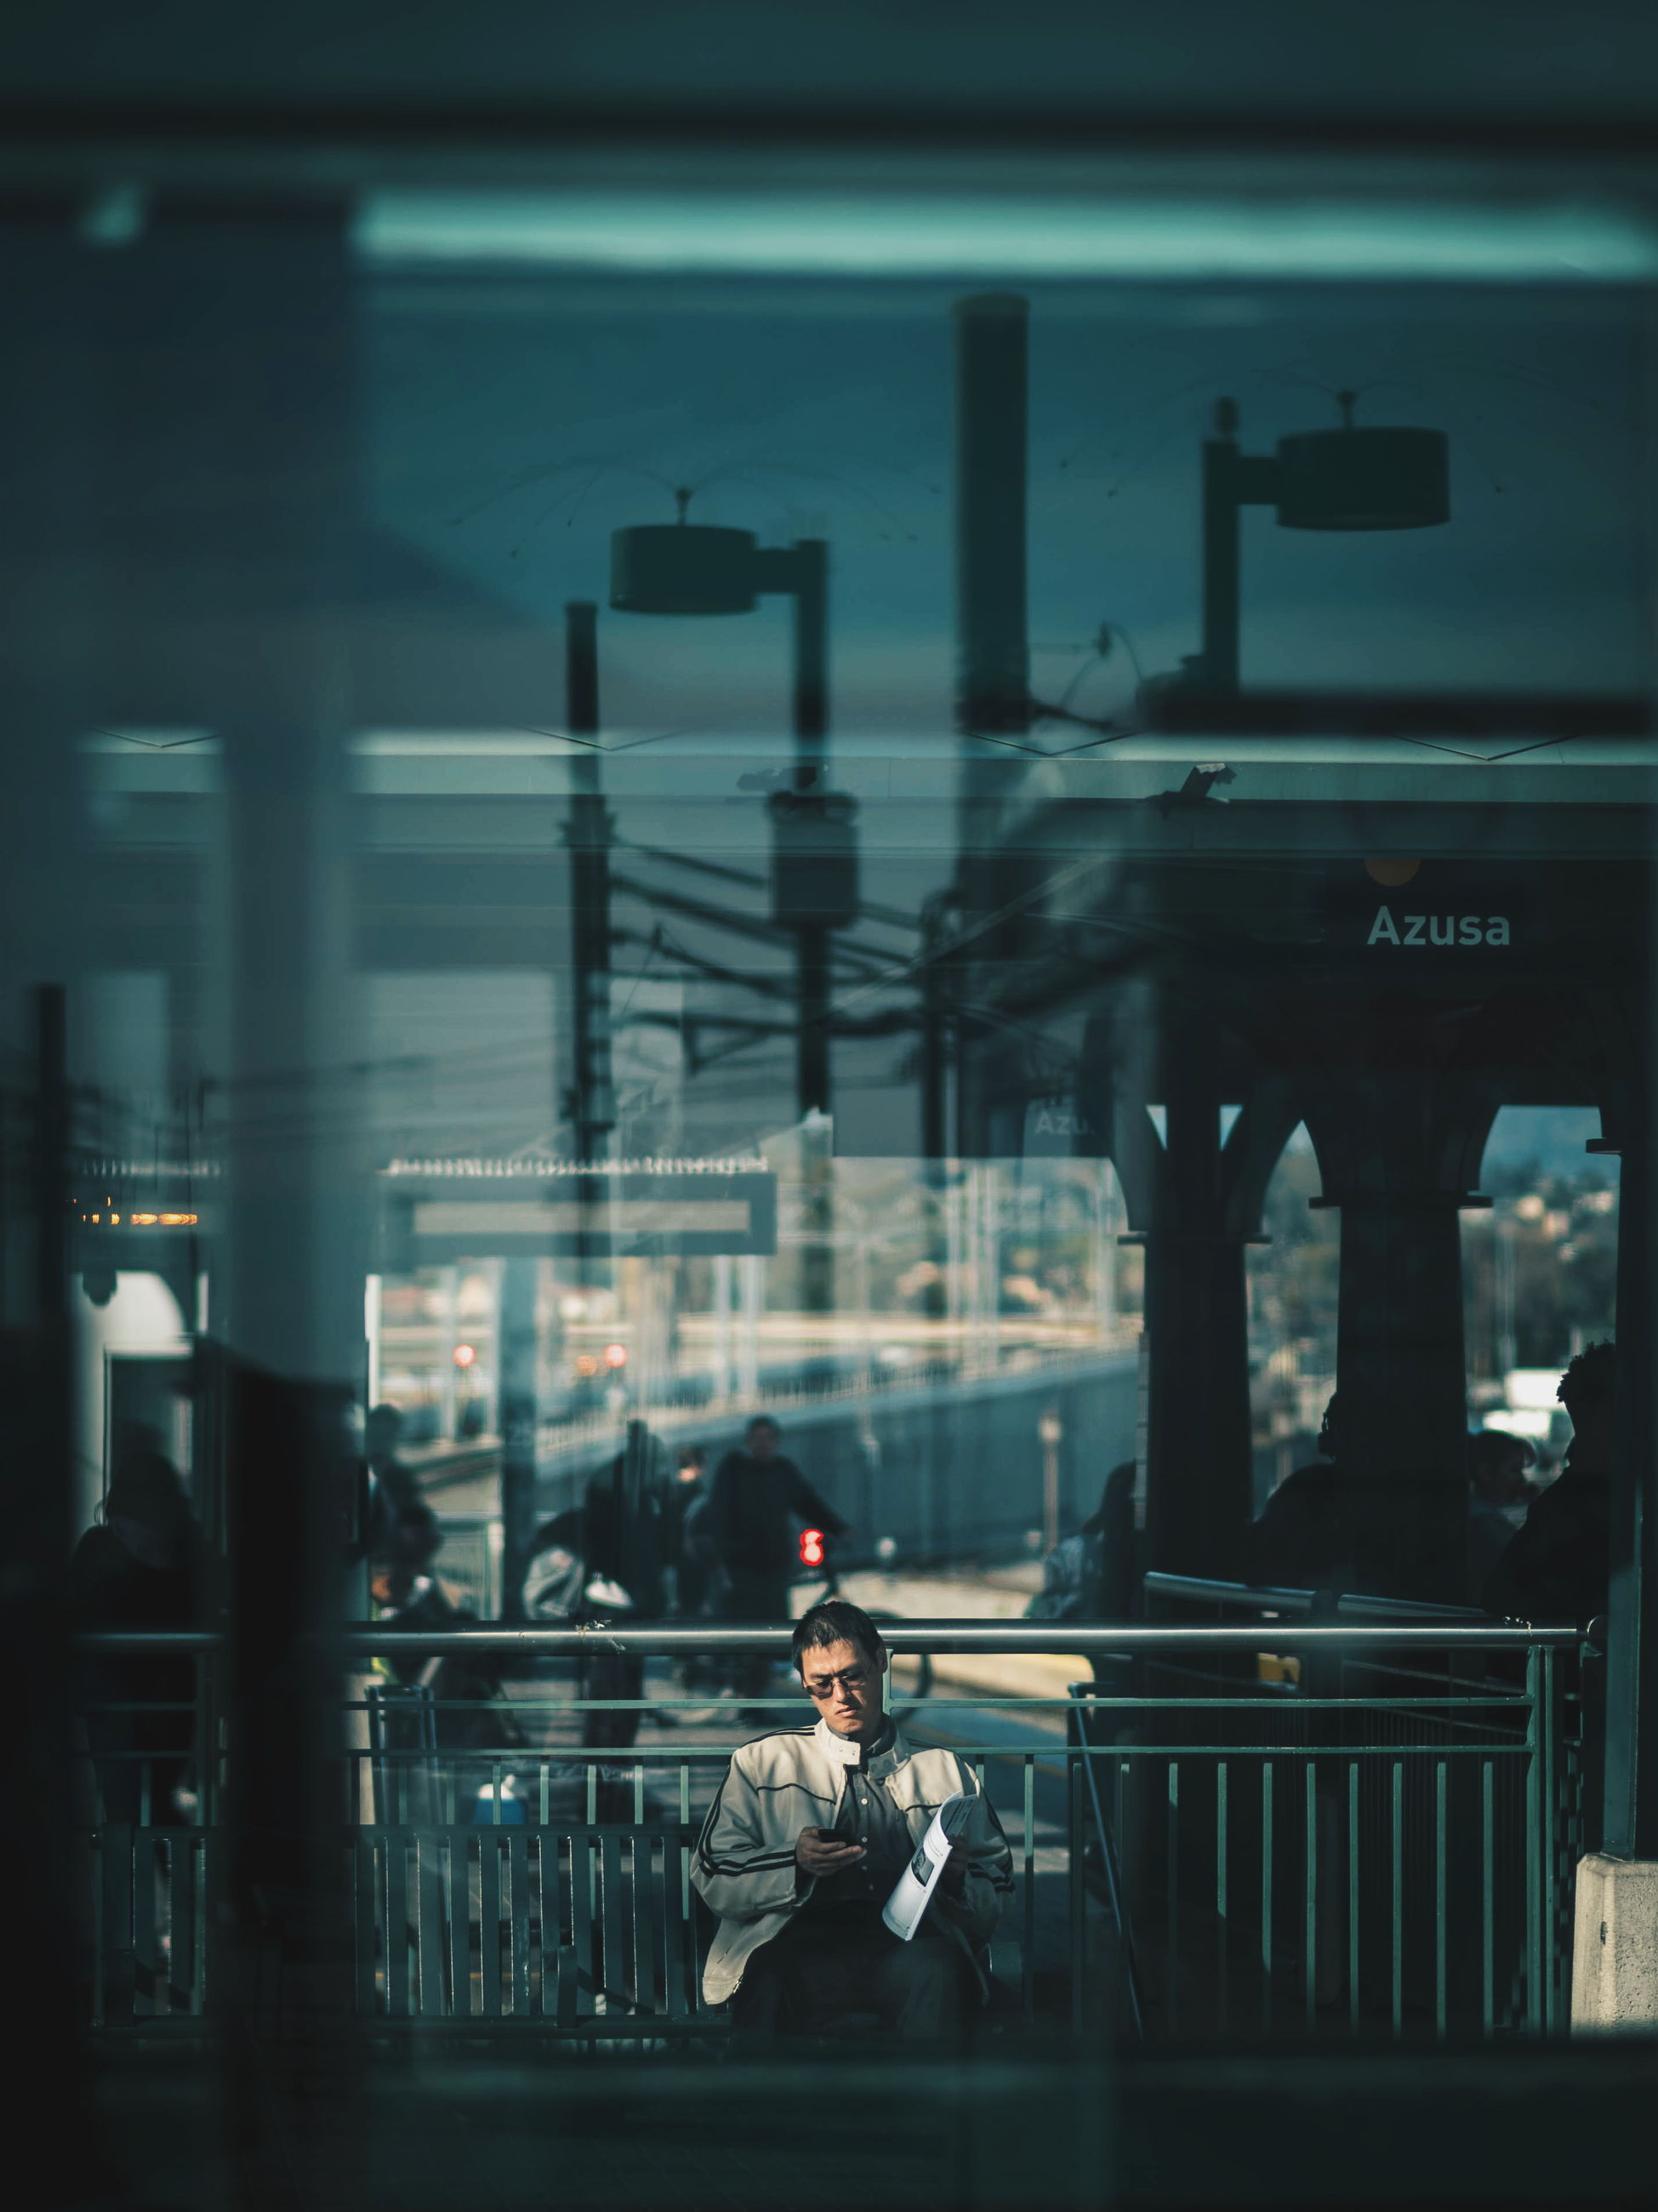 real people, connection, lifestyles, railing, bridge - man made structure, two people, architecture, waiting, women, built structure, sitting, transportation, indoors, building exterior, standing, full length, men, water, young women, young adult, illuminated, day, city, people